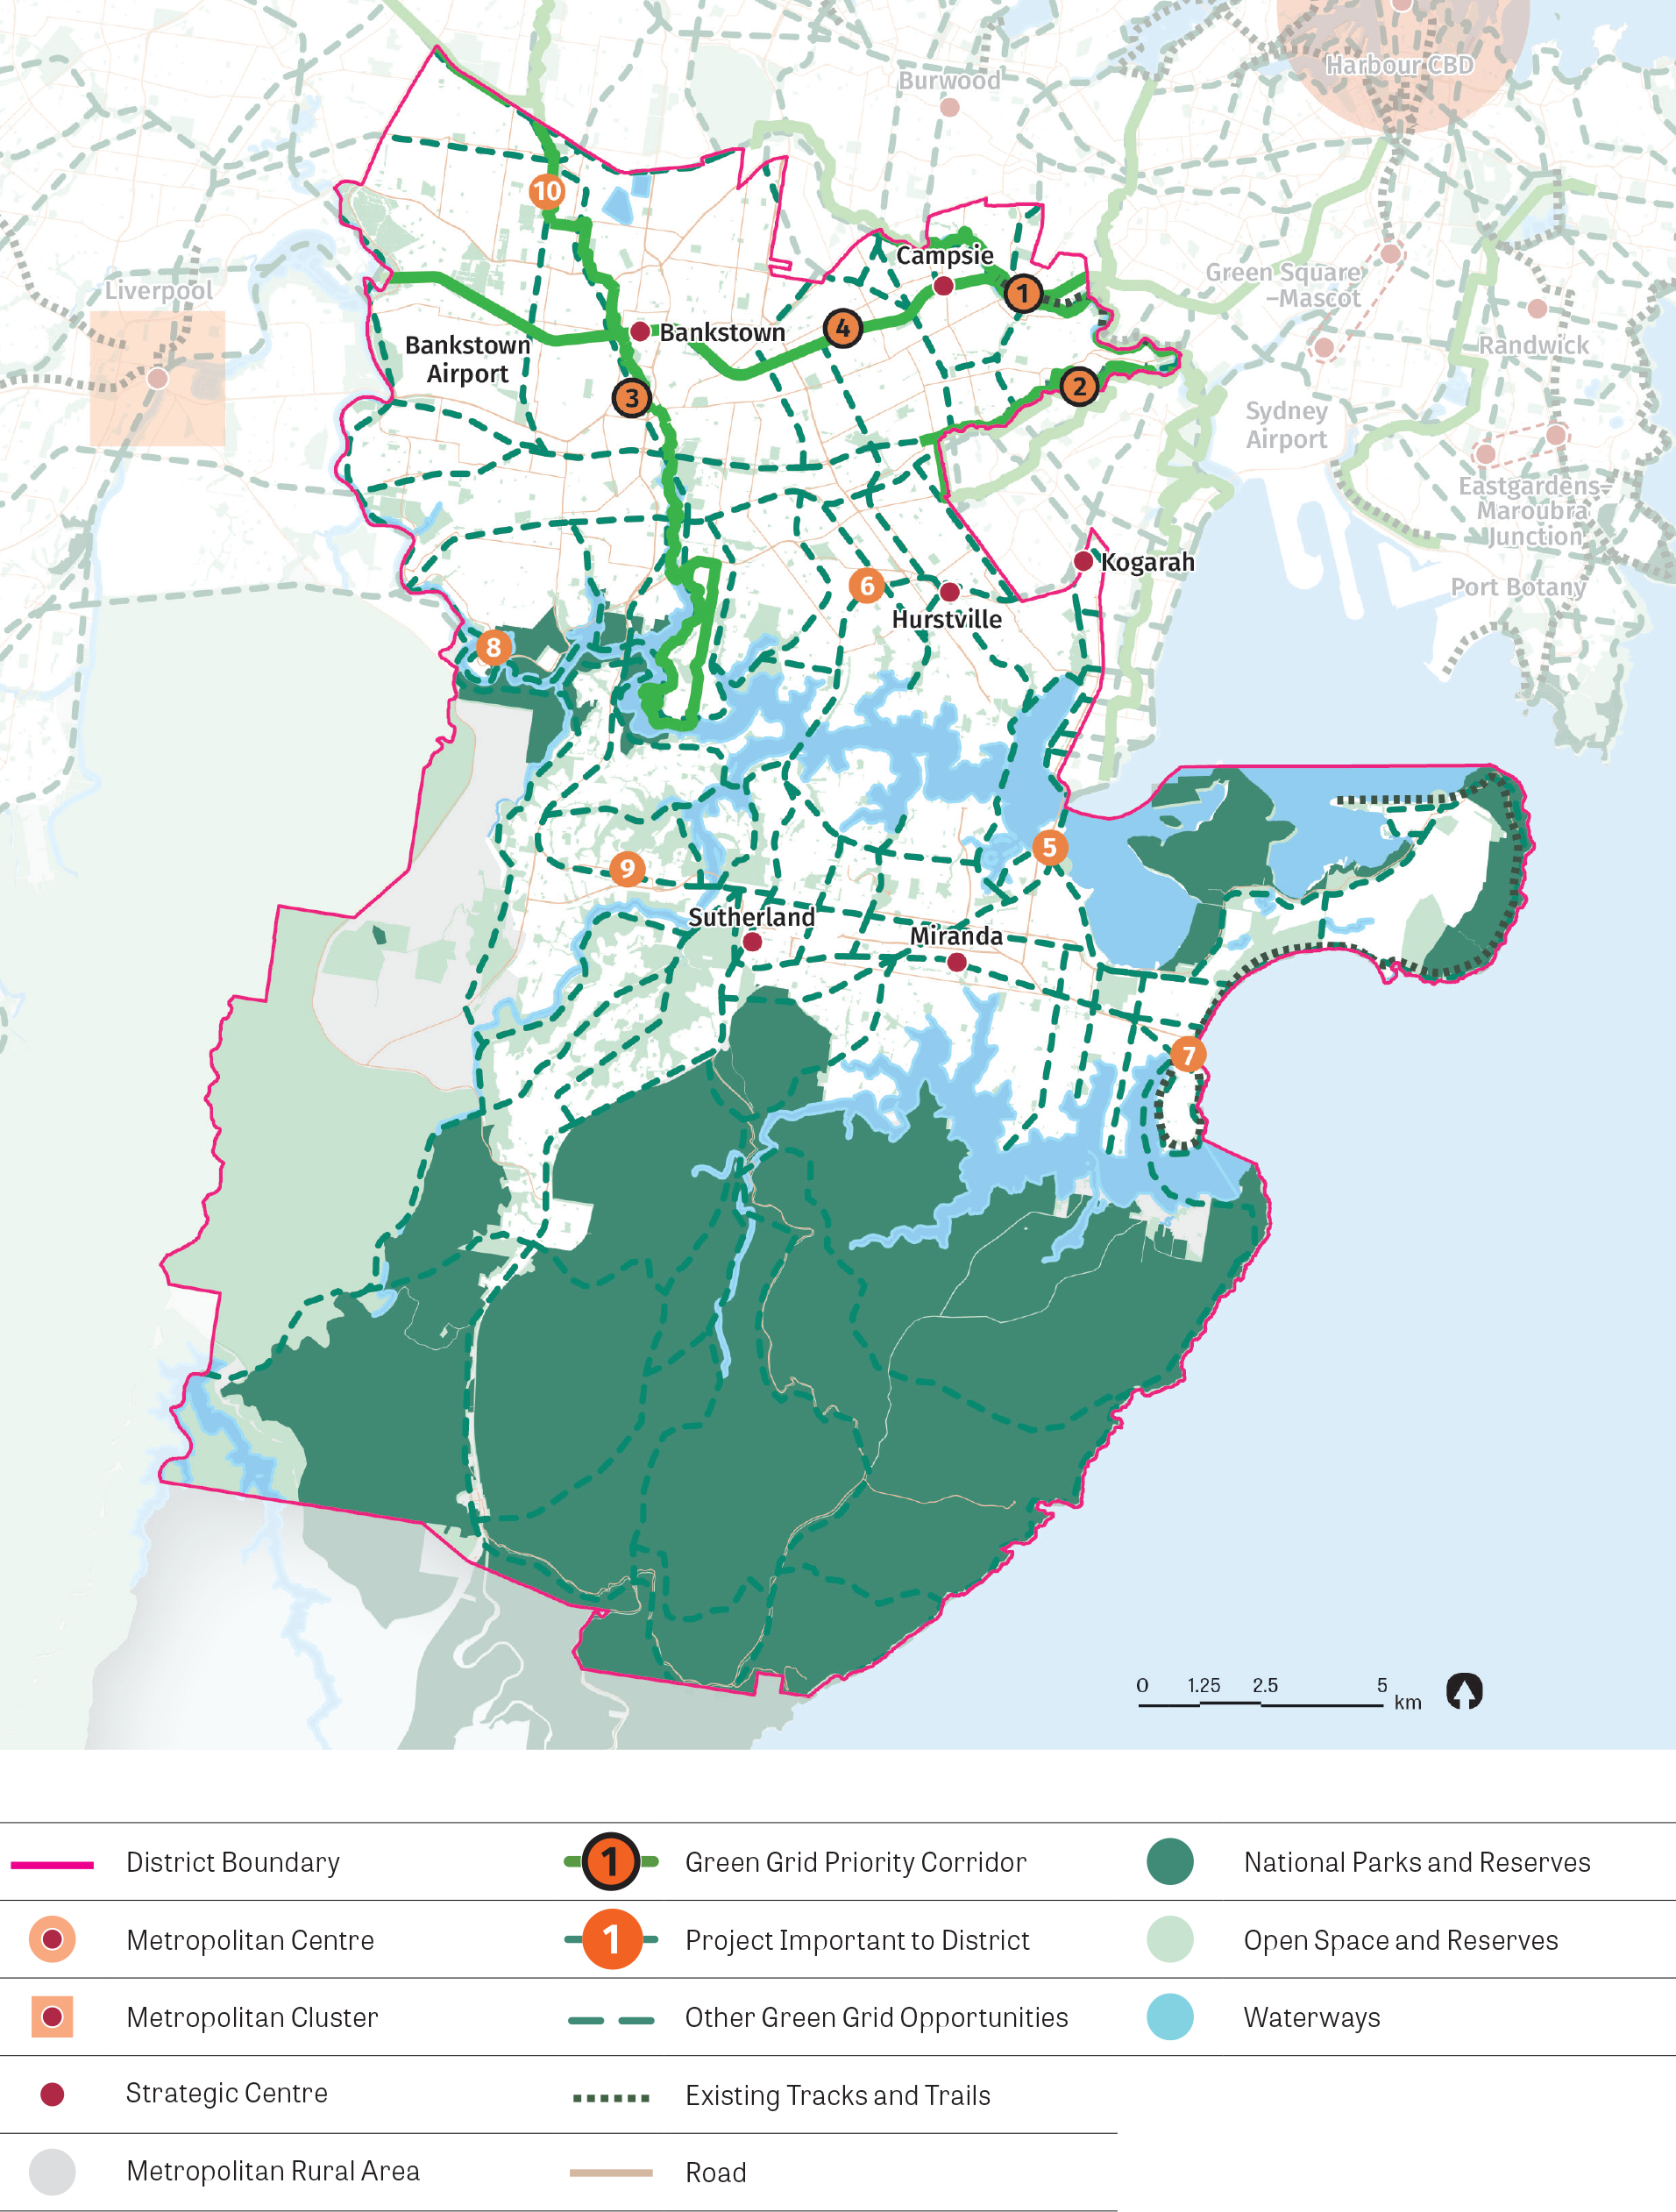 A stylised map showing the green grid opportunities in the district. The map shows the green grid priority corridors, future green grid opportunities, priority corridors and projects important to the district.